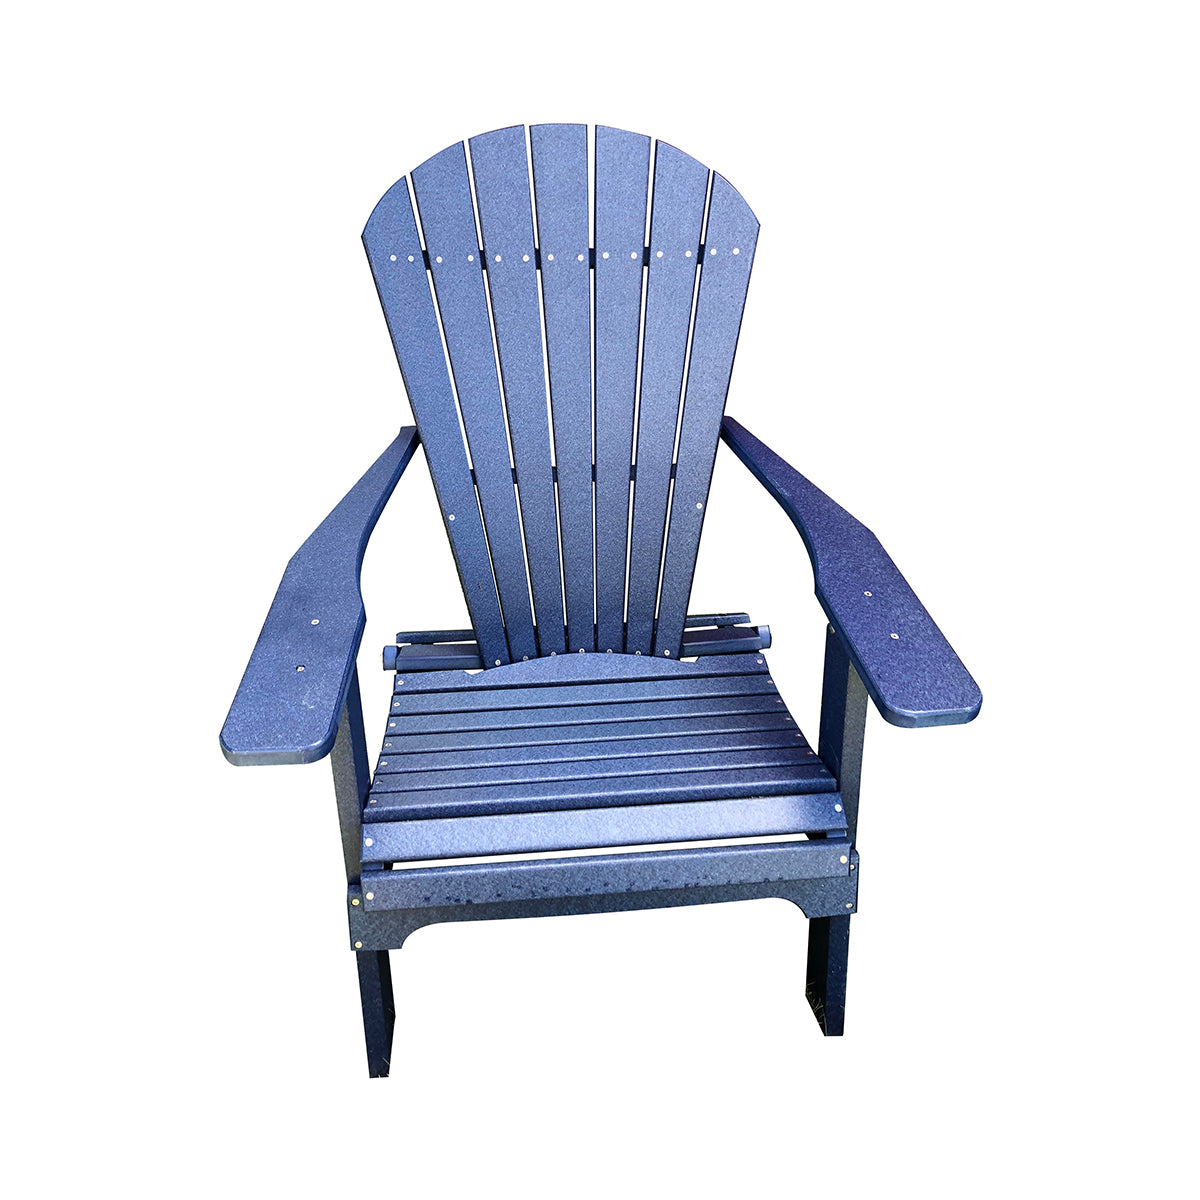 Outdoor Rustic Poly Lumber Folding Adirondack Chair Blue